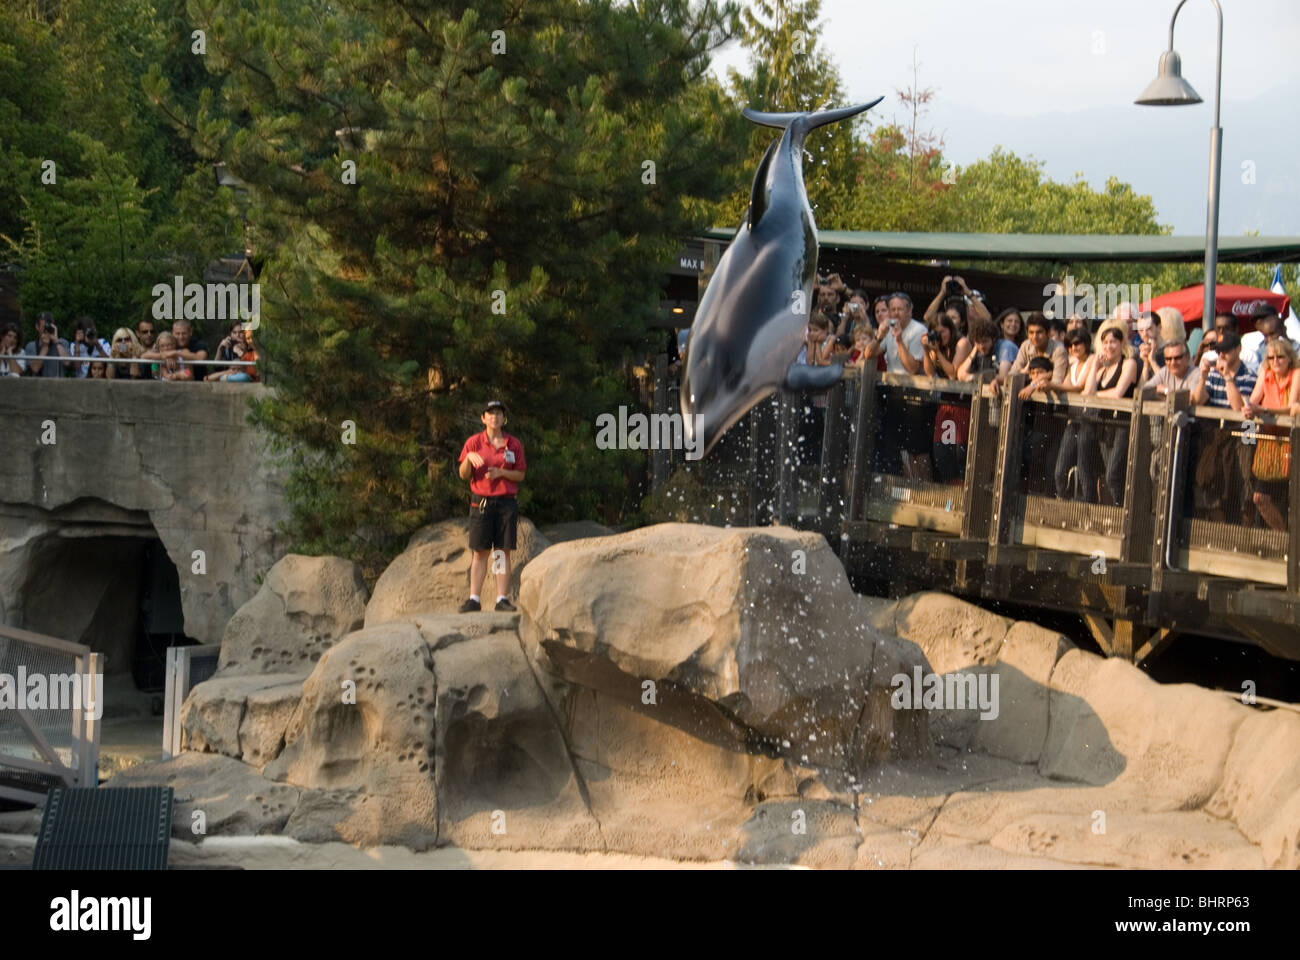 Dolphin show at Vancouver Aquarium in British Columbia Canada. - Stock Image